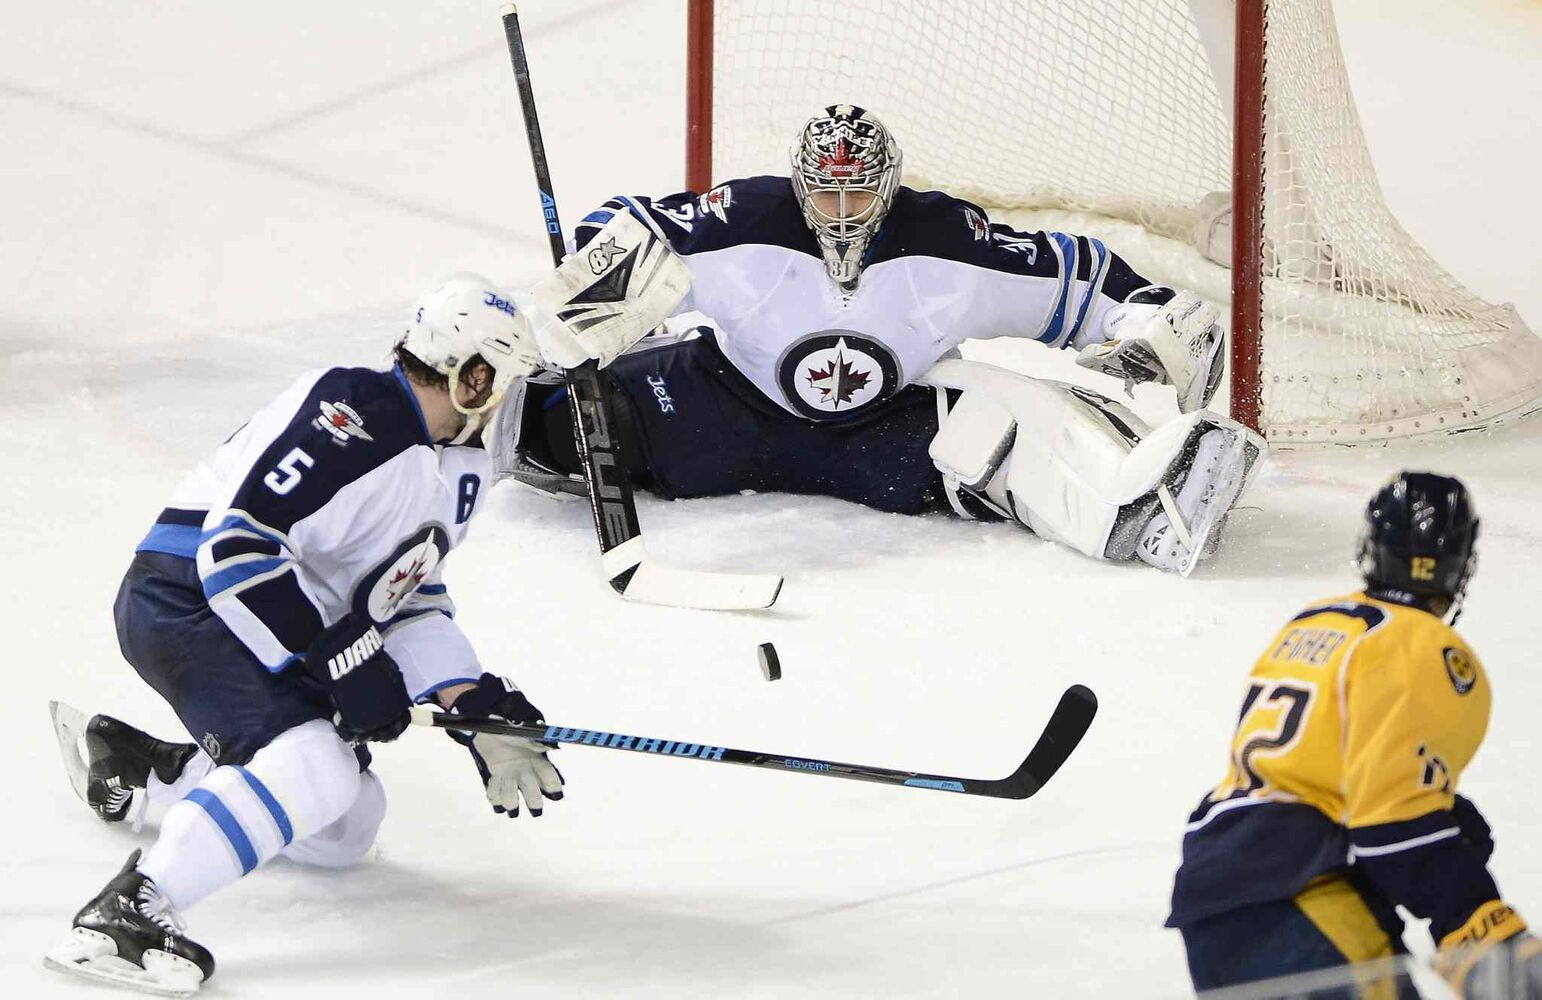 Winnipeg Jets' goalie Ondrej Pavelec (31) blocks a third-period shot from Nashville Predators' forward Mike Fisher (12) as Jets' defenseman Mark Stuart (5) tries to clear the puck. (Mark Zaleski / The Associated Press)